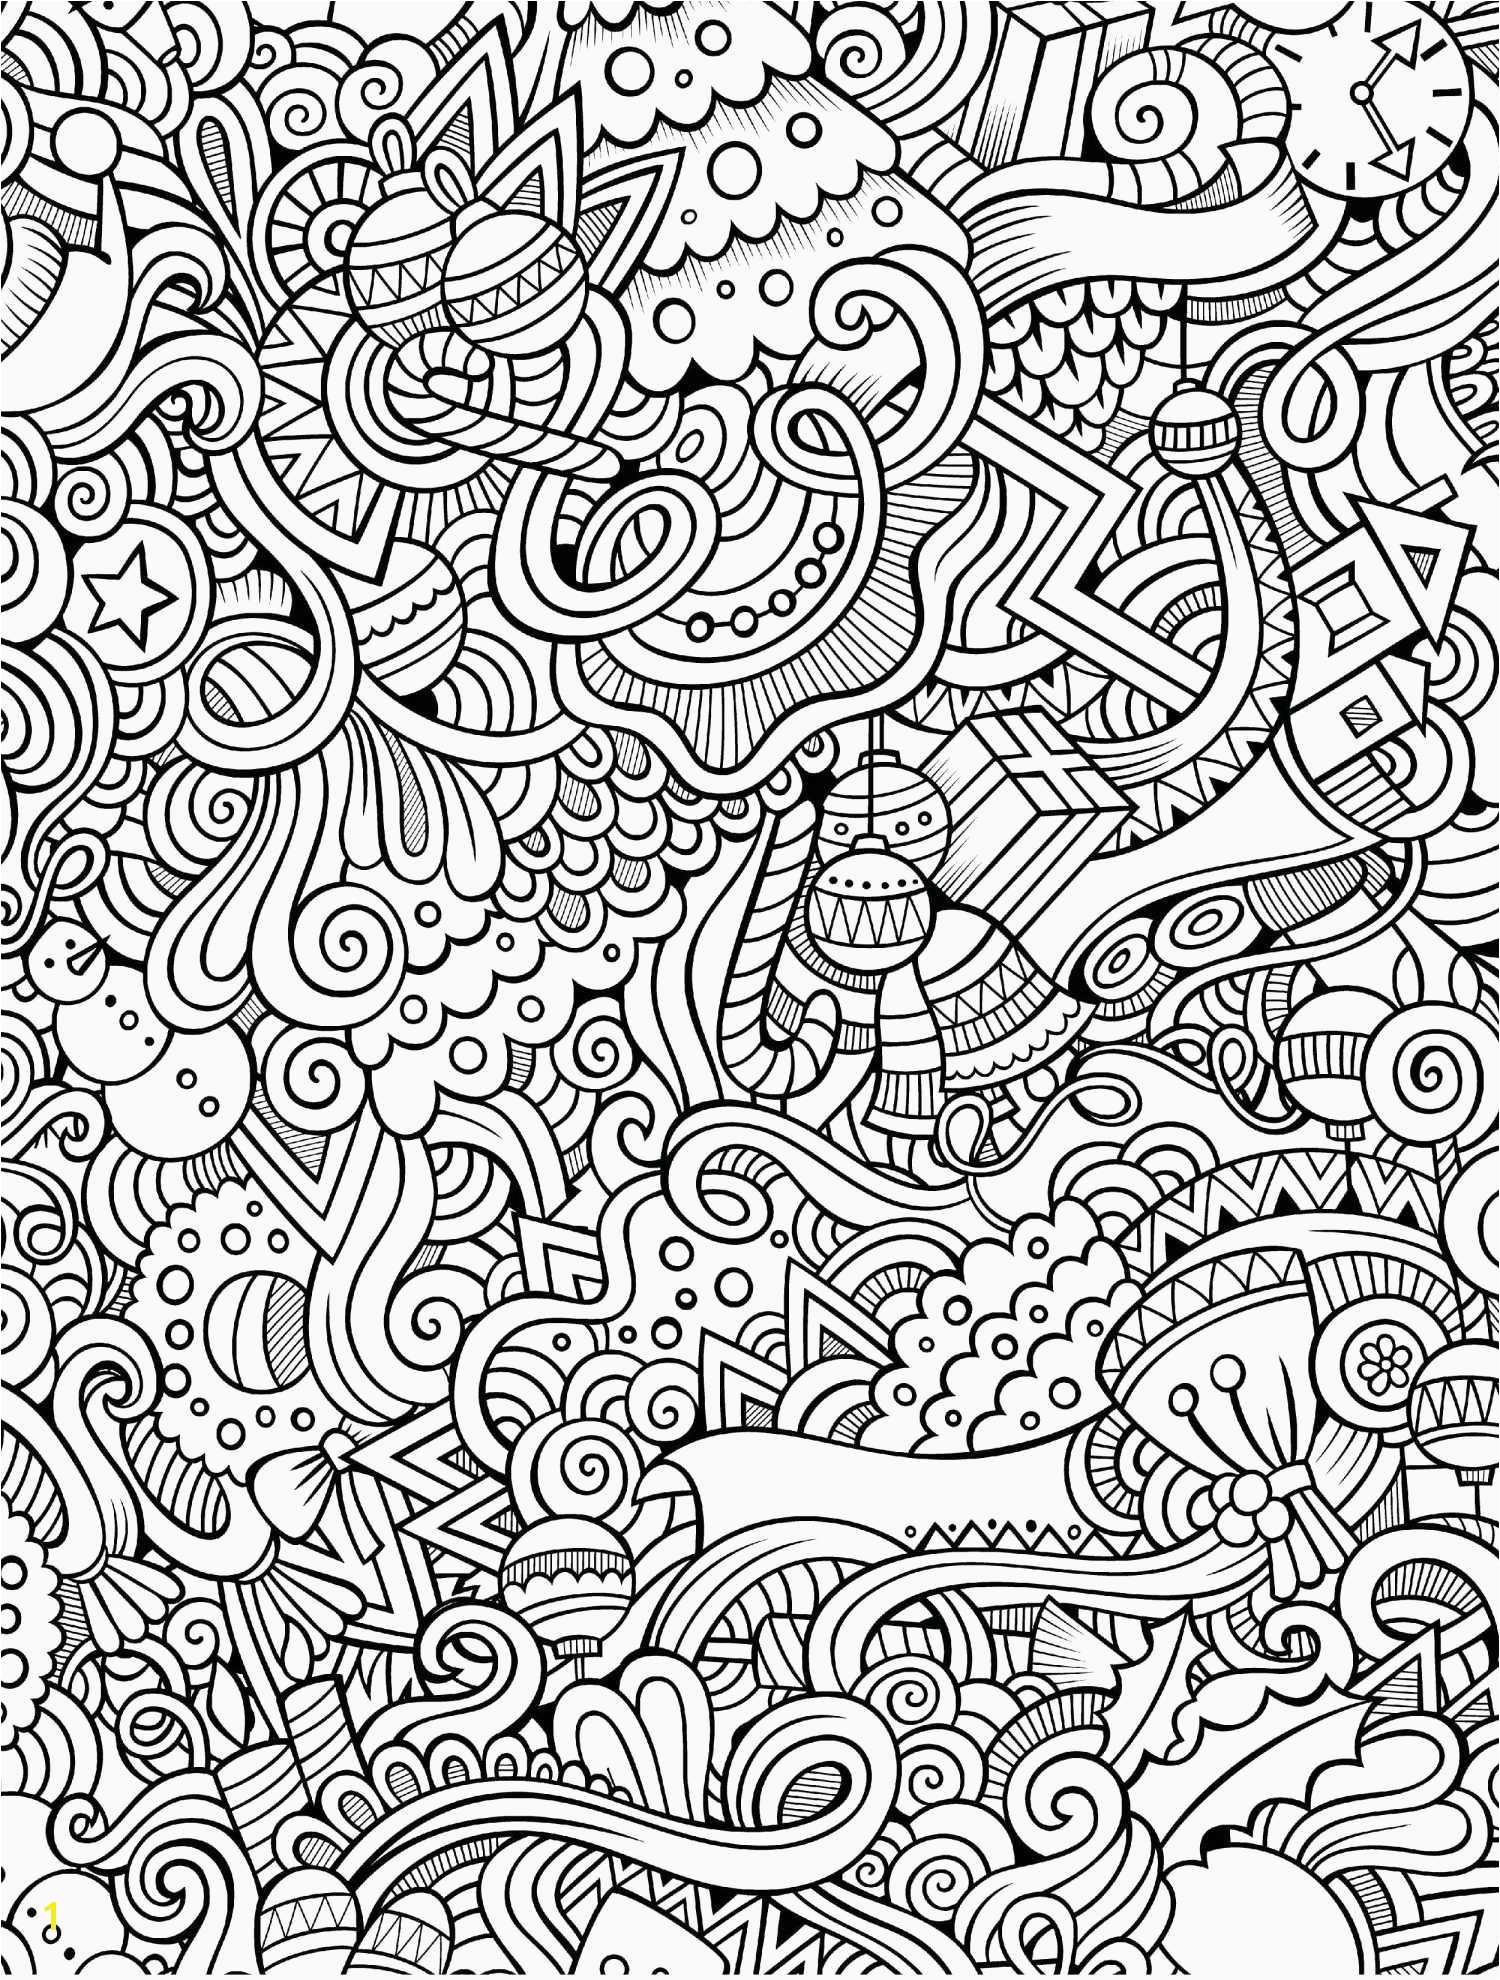 0d B4 2c Free Printable Coloring Sheet Inspirational Coloring Pages for Adults Abstract